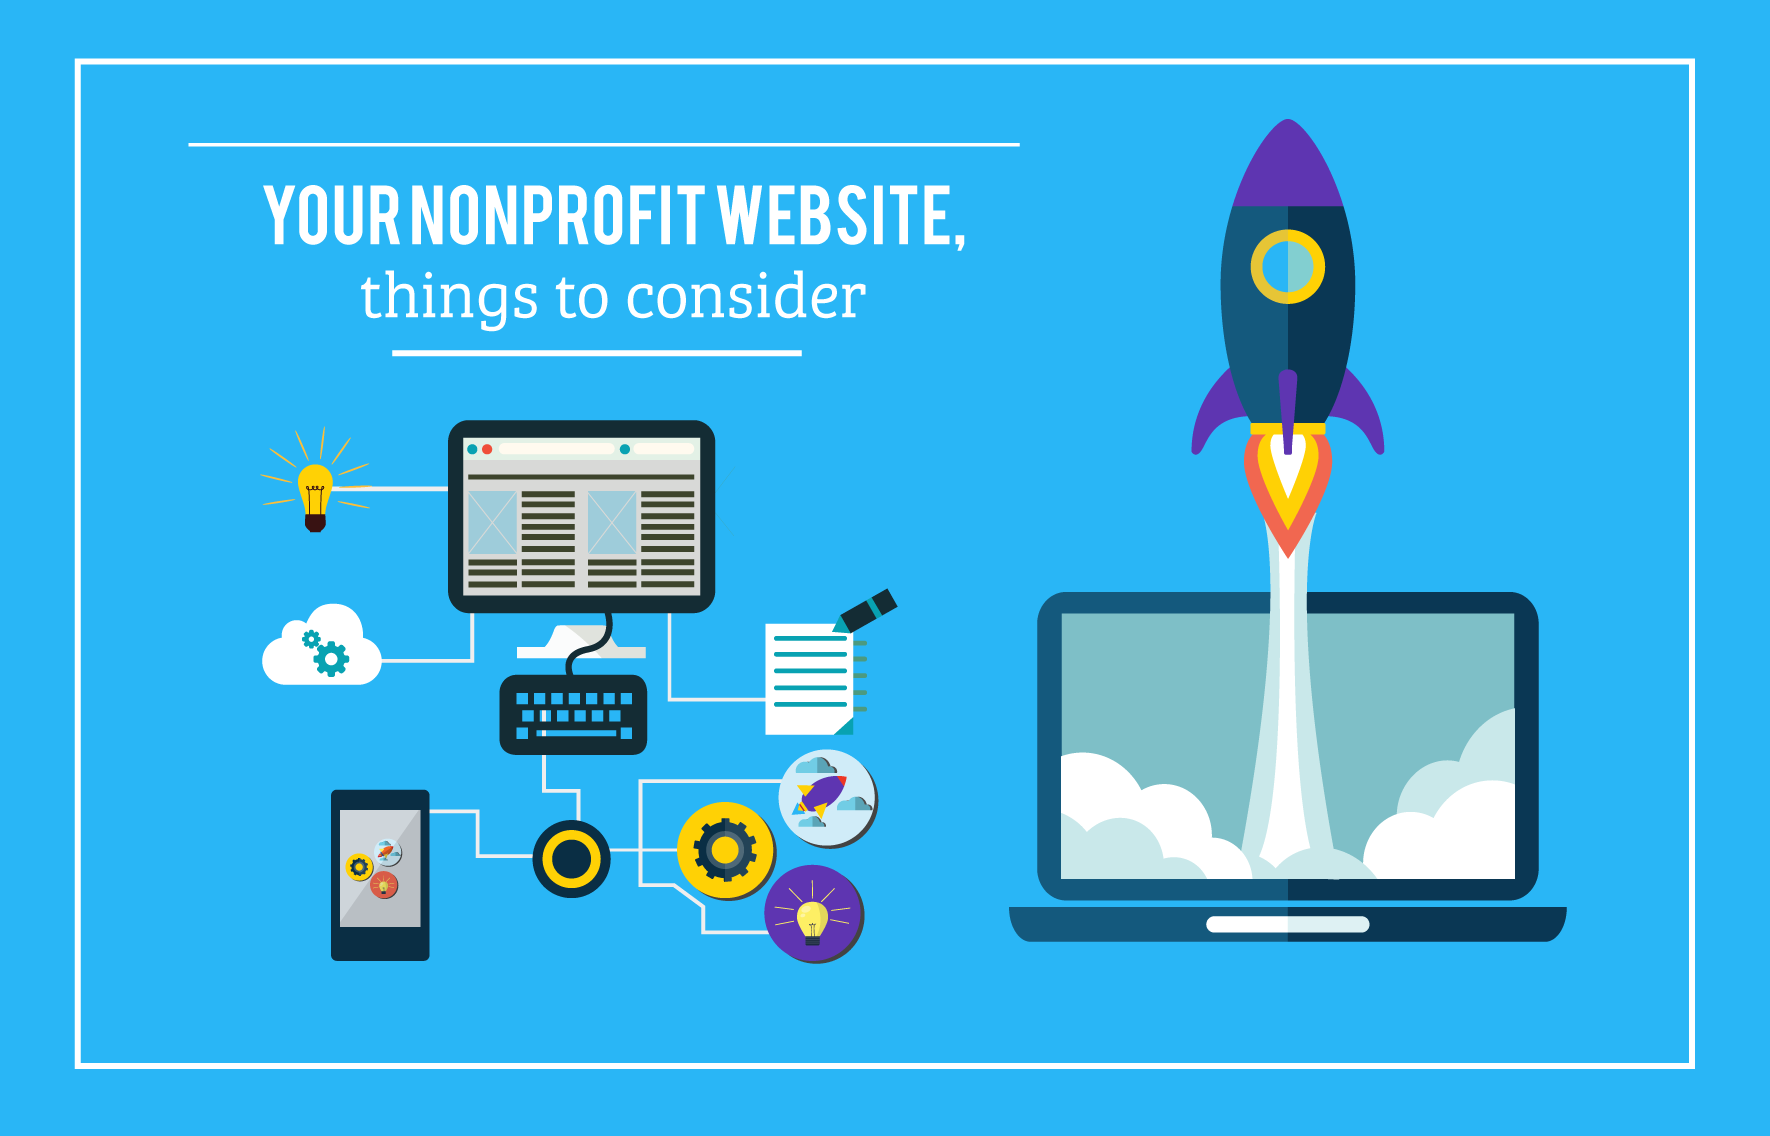 Your nonprofit website – things to consider